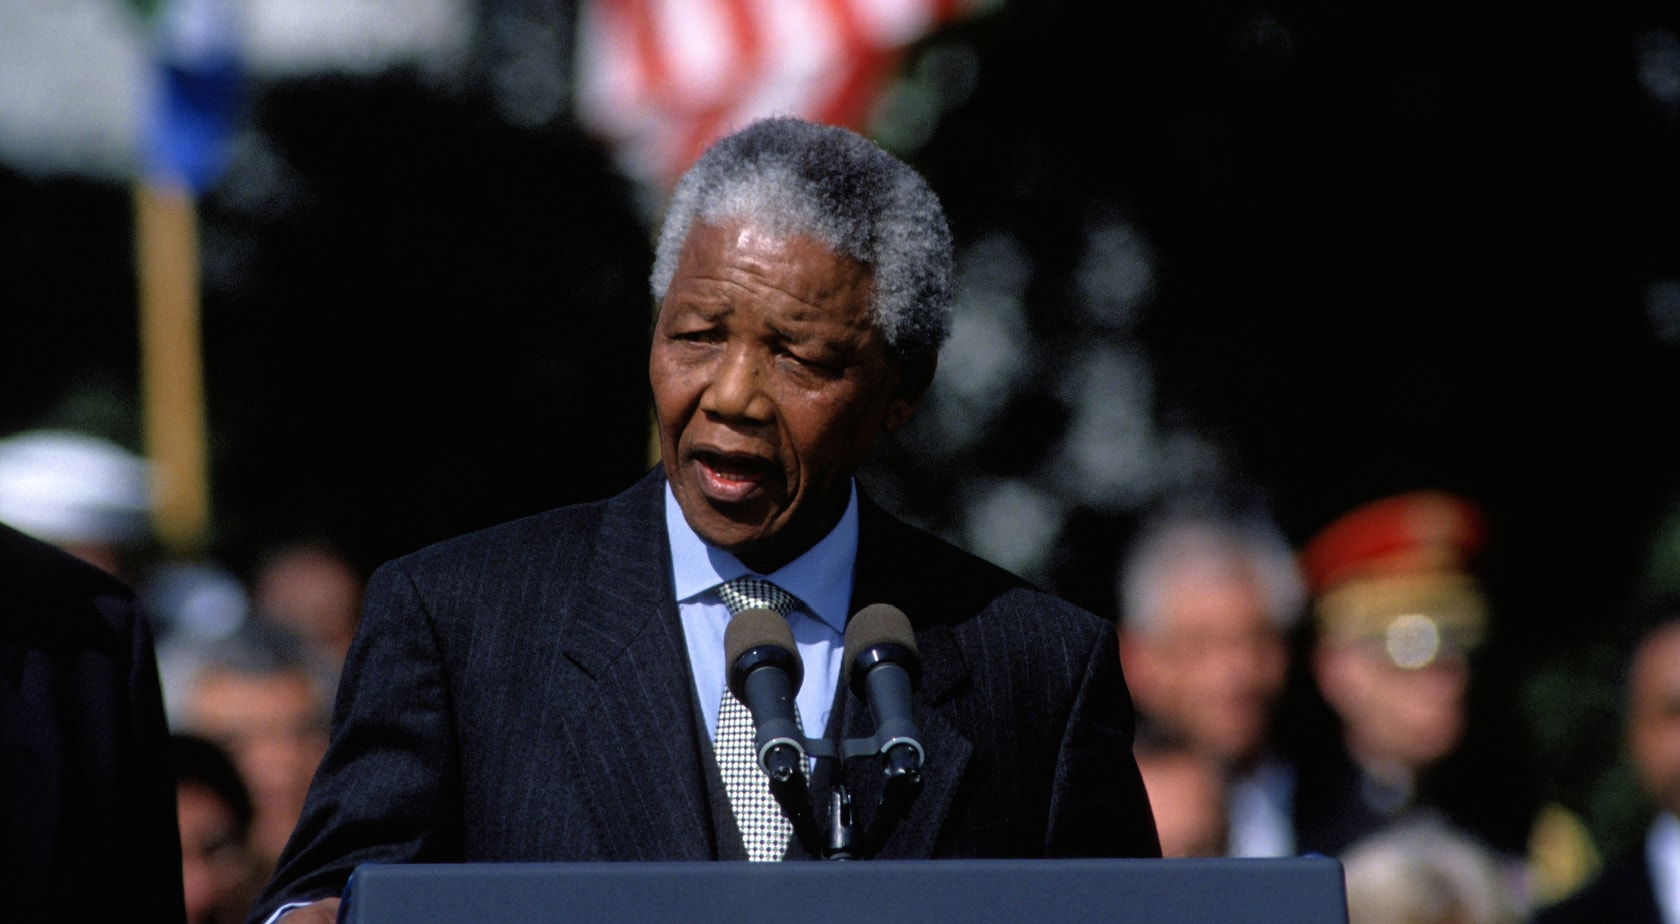 Nelson Mandela: His Life and Legacy